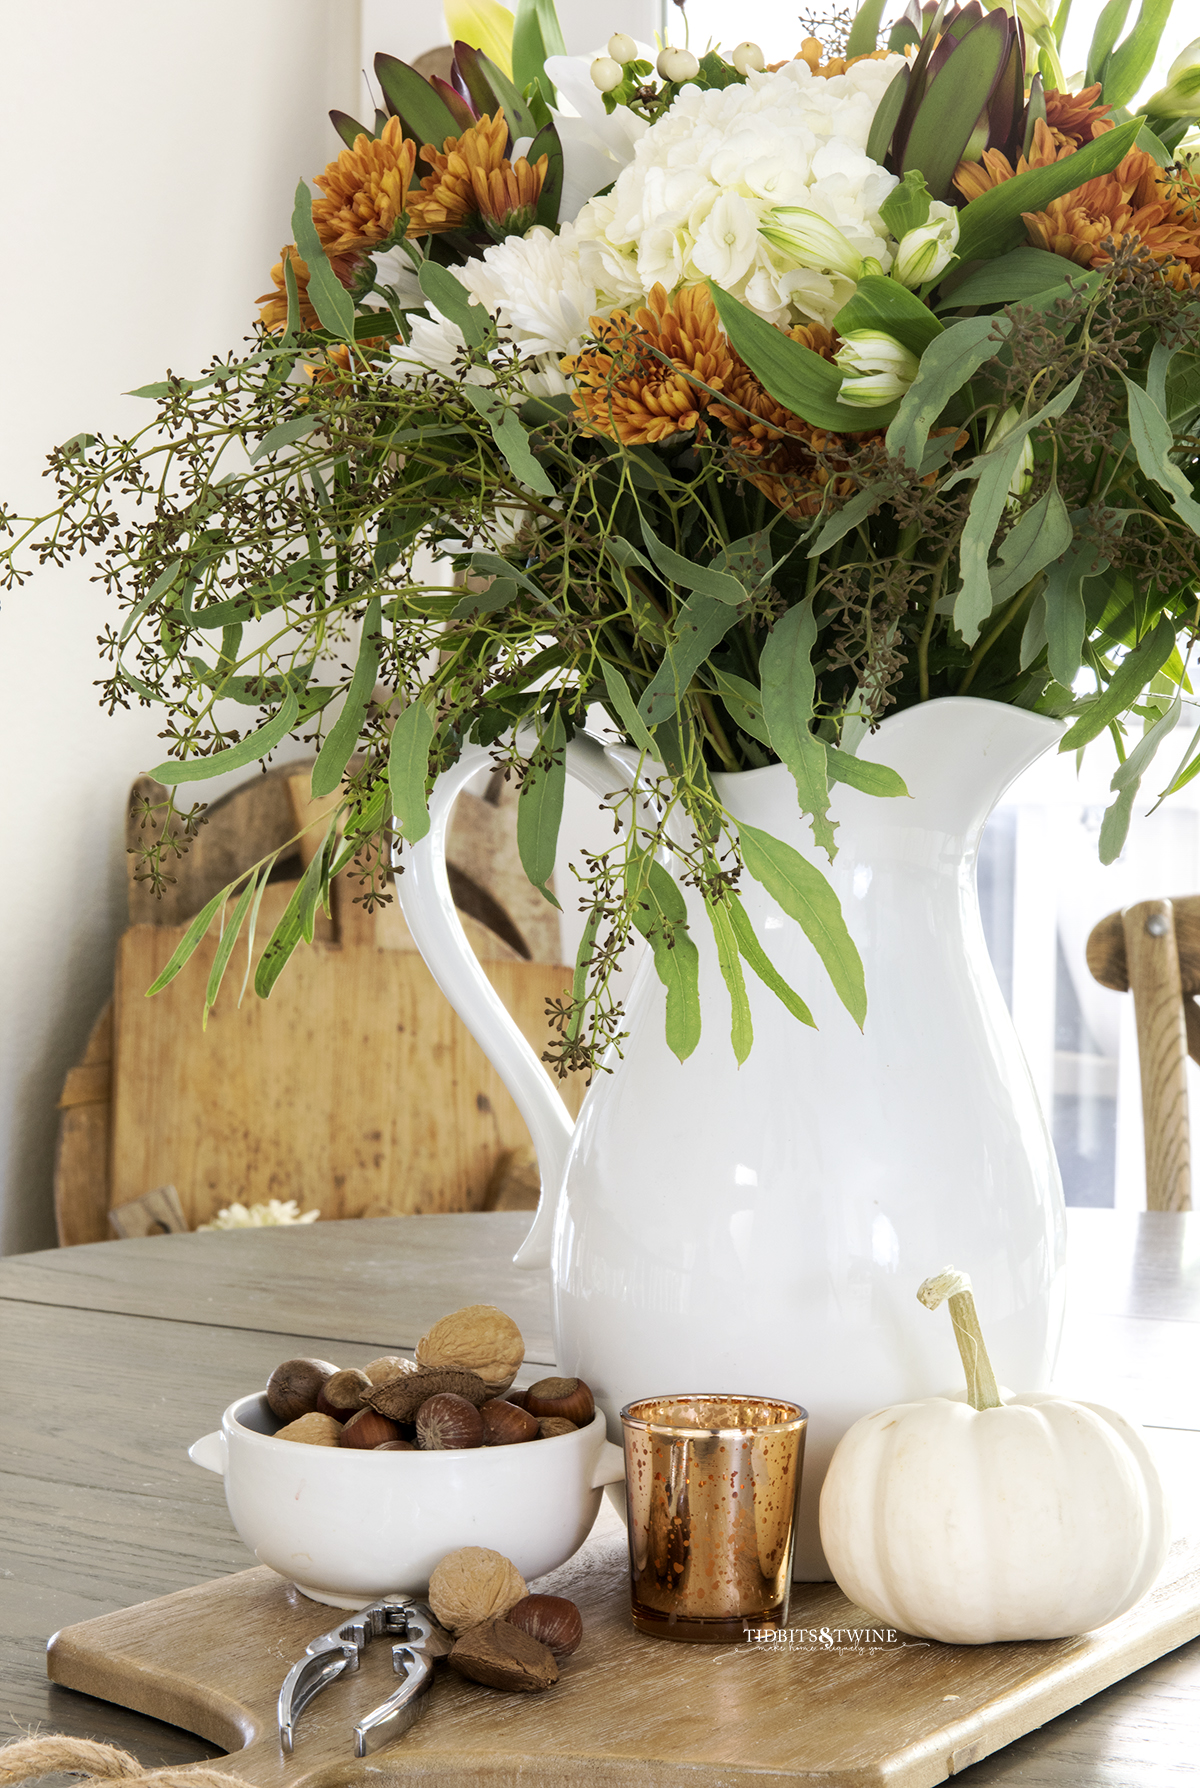 fall flower arrangement with white hydrangea and rust chrysanthemum in white pitcher on kitchen table with bowl of nuts